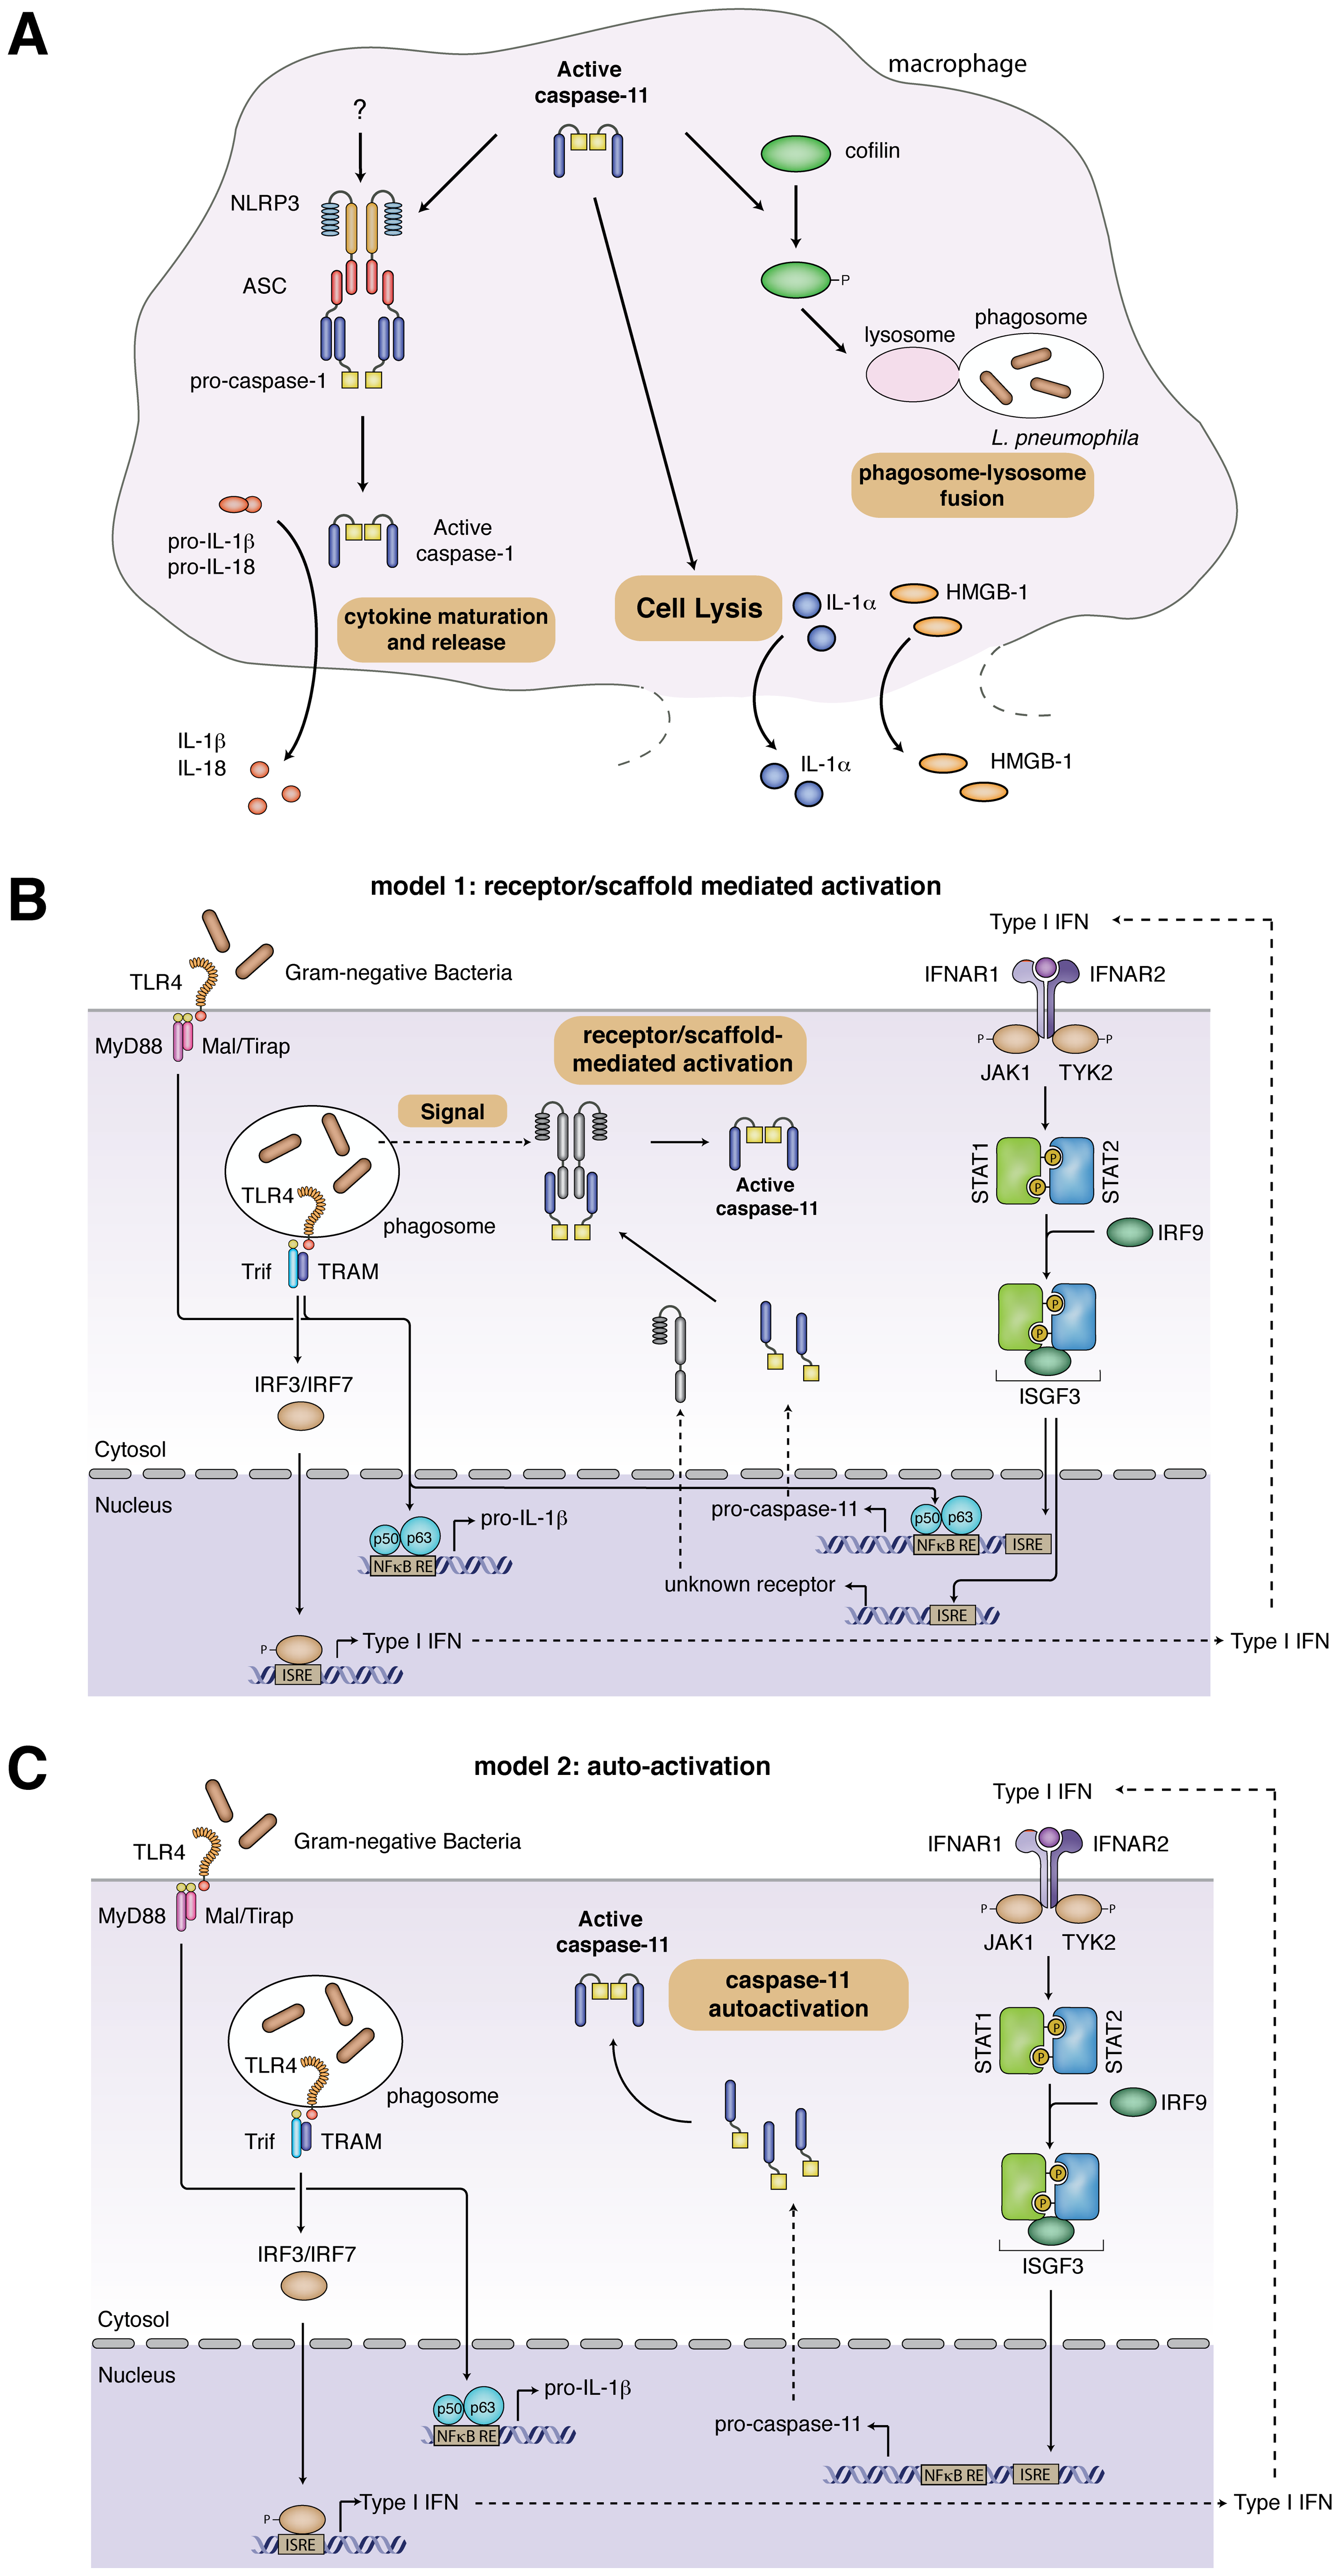 Caspase-11 effector functions and models for caspase-11 activation.